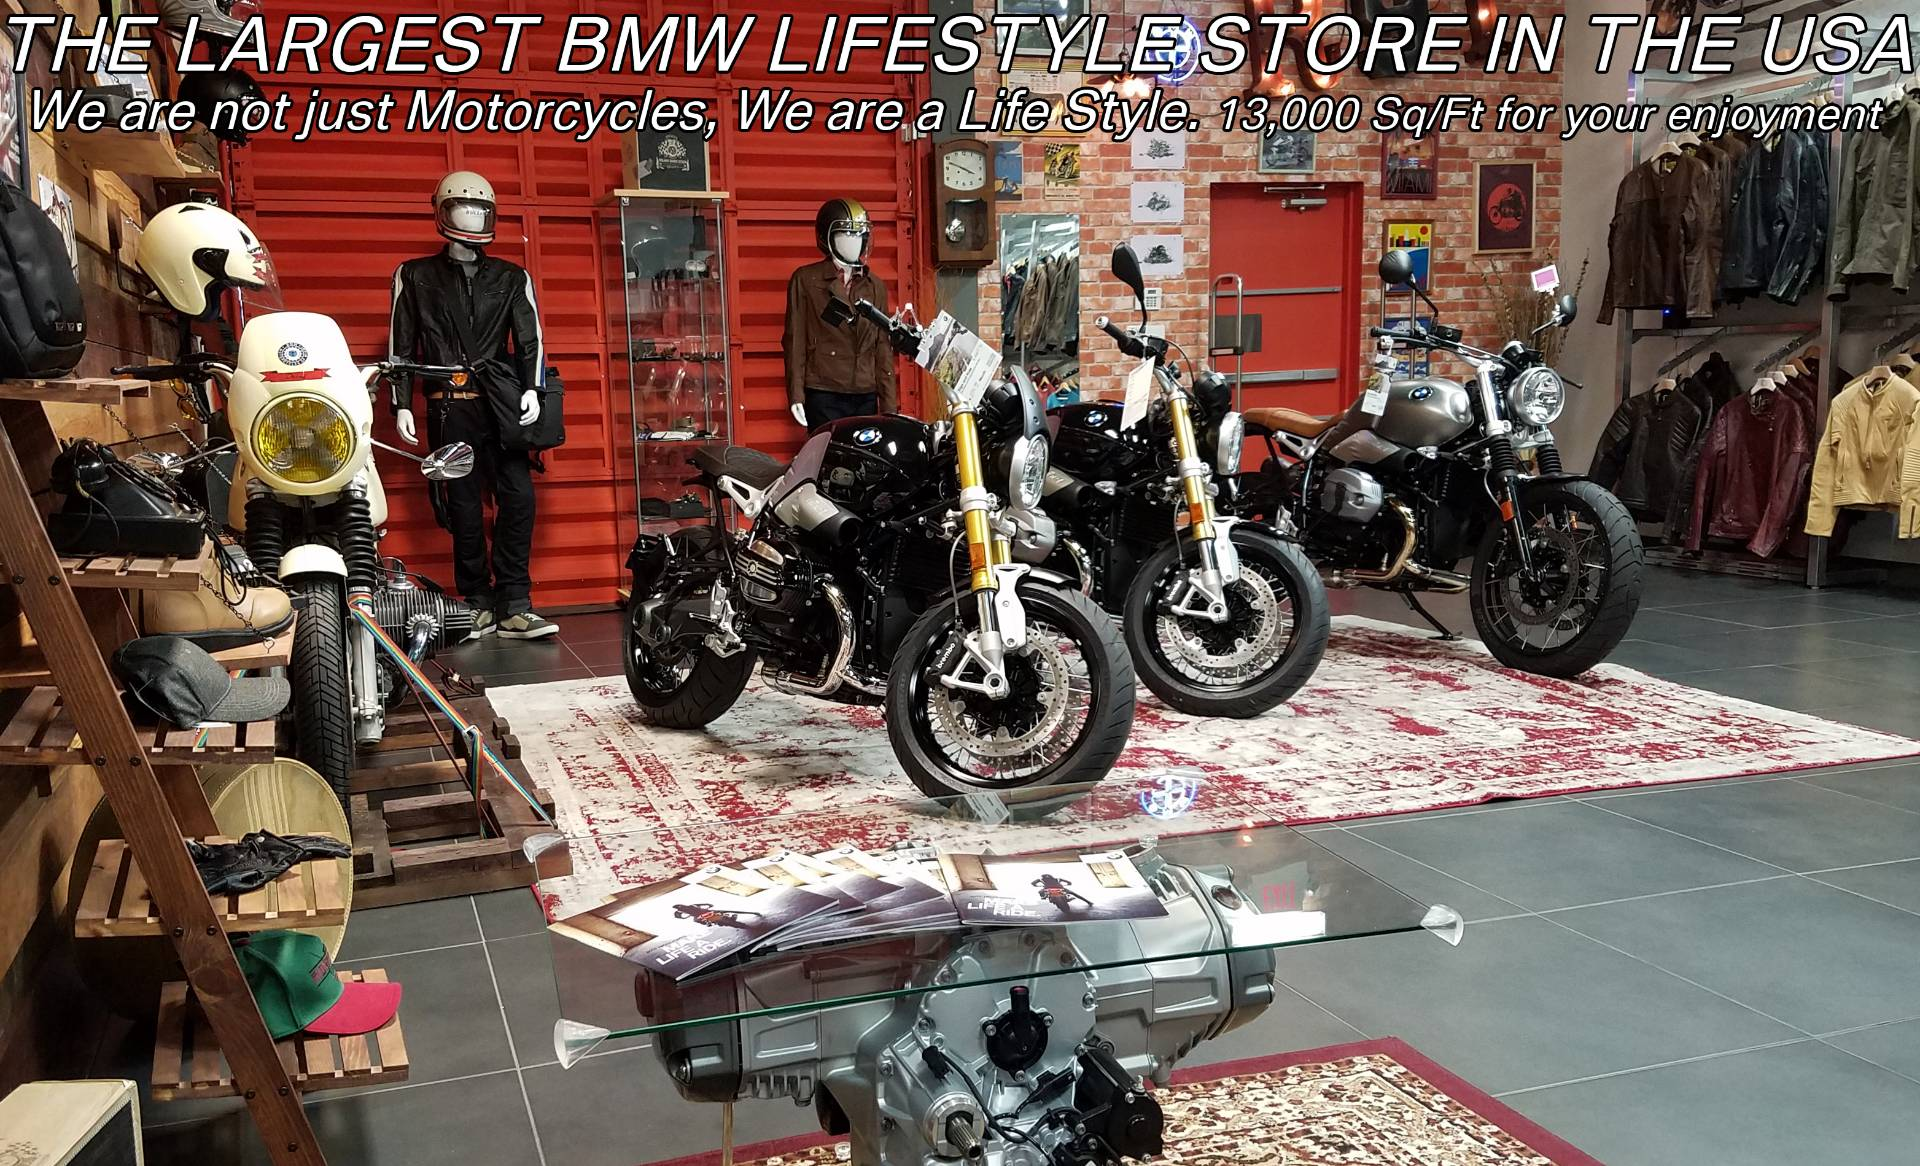 New 2019 BMW R NineT Scrambler for sale, BMW for sale, BMW Motorcycle Café Racer, new BMW Scrambler, Srambler, BMW. BMW Motorcycles of Miami, Motorcycles of Miami - Photo 32